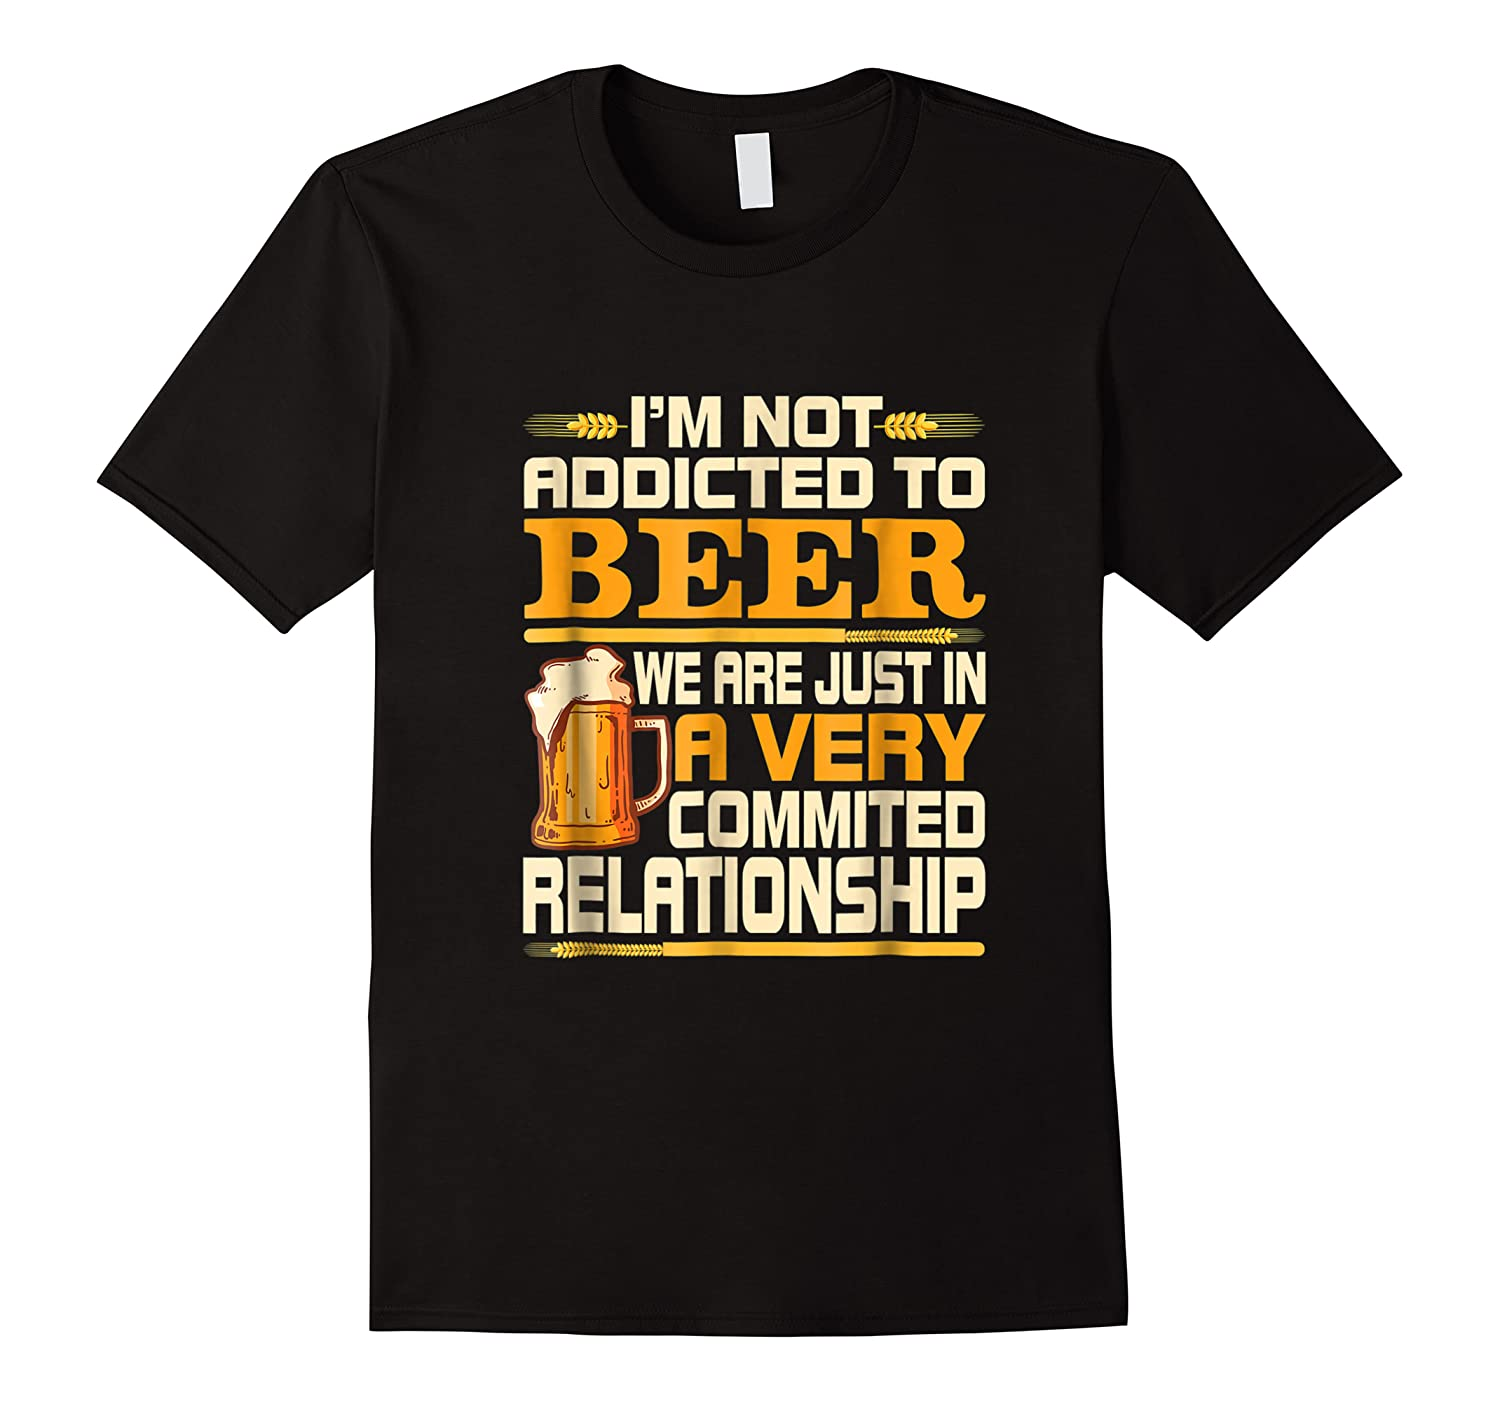 I'm Not Addicted To Beer Funny Beer Addicted Drinking Shirts